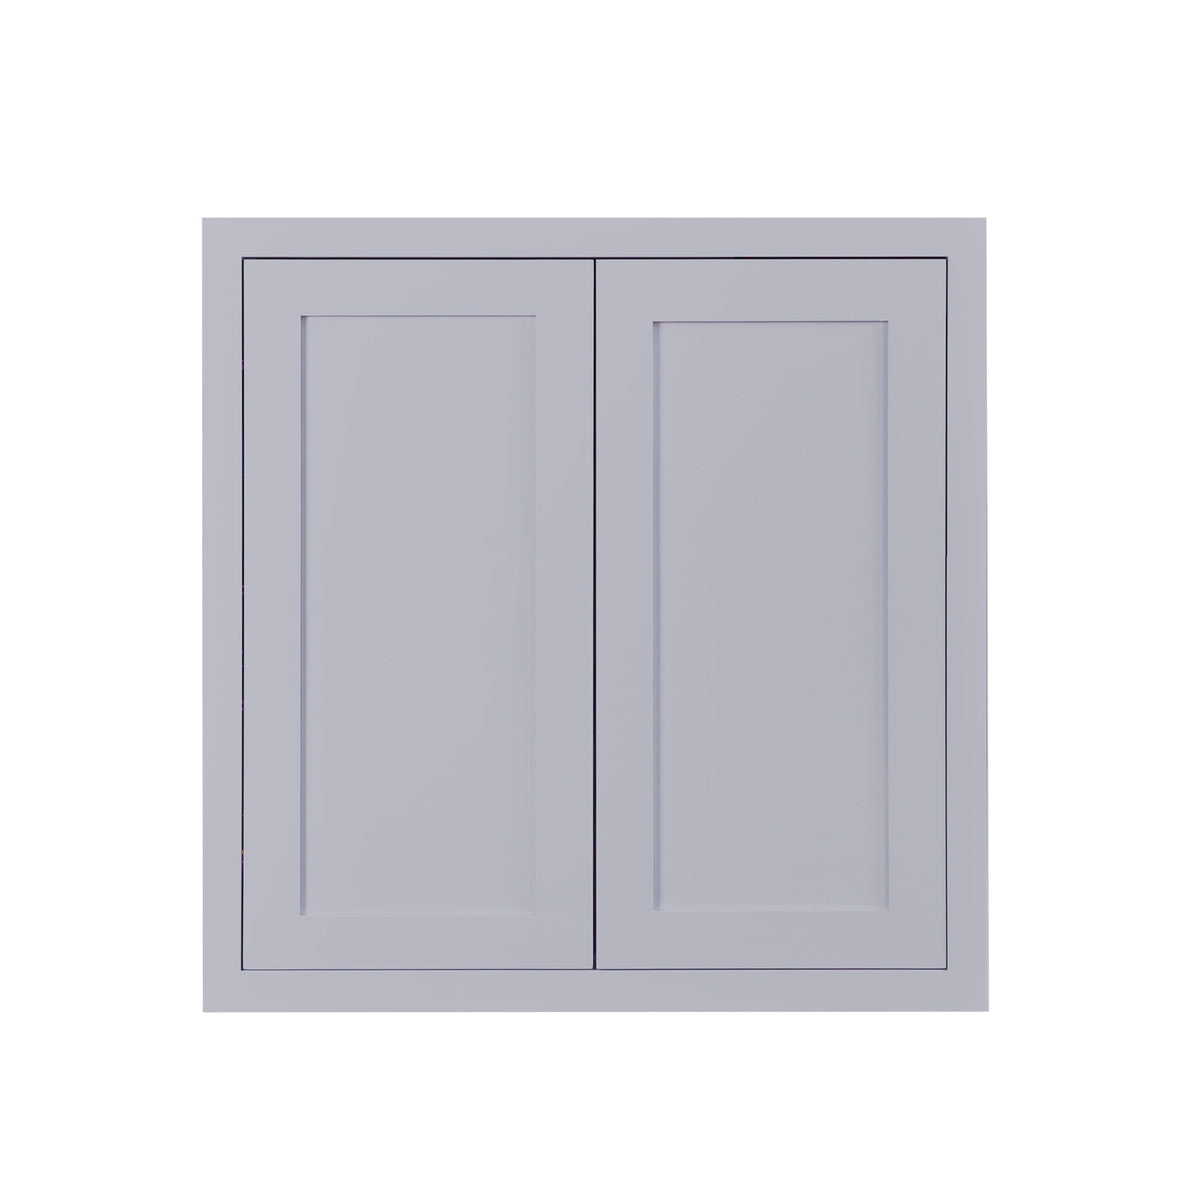 "30"" Tall Wall Cabinet 30"" Tall Light Gray Inset Shaker Wall Cabinet - Double Door - 24"", 27"", 30"", 33"" & 36"" D2W303014 Inset Kitchen Cabinets"